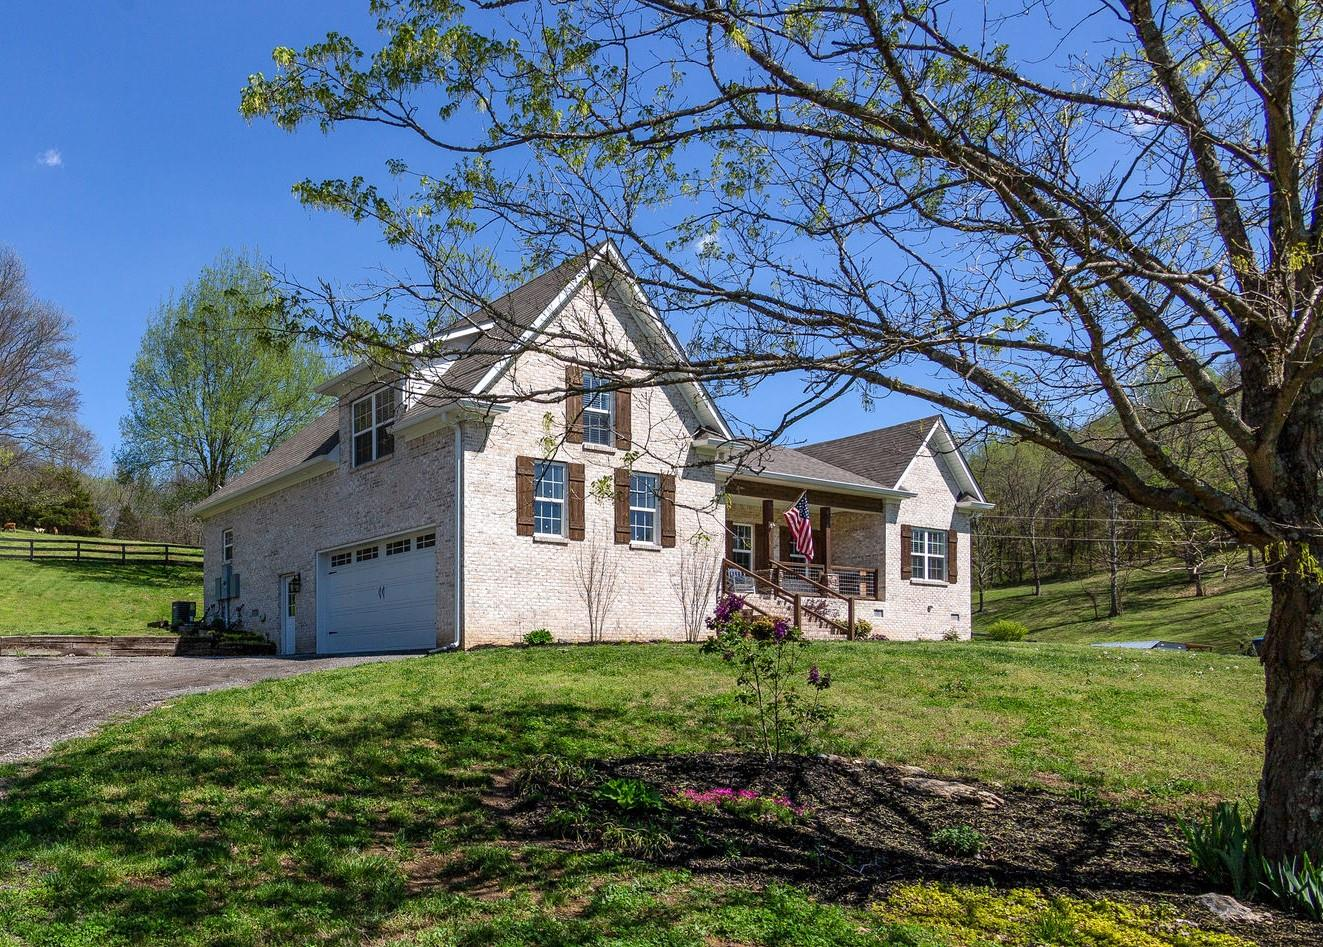 1908 Dr Robinson Rd, Spring Hill in Williamson County County, TN 37174 Home for Sale